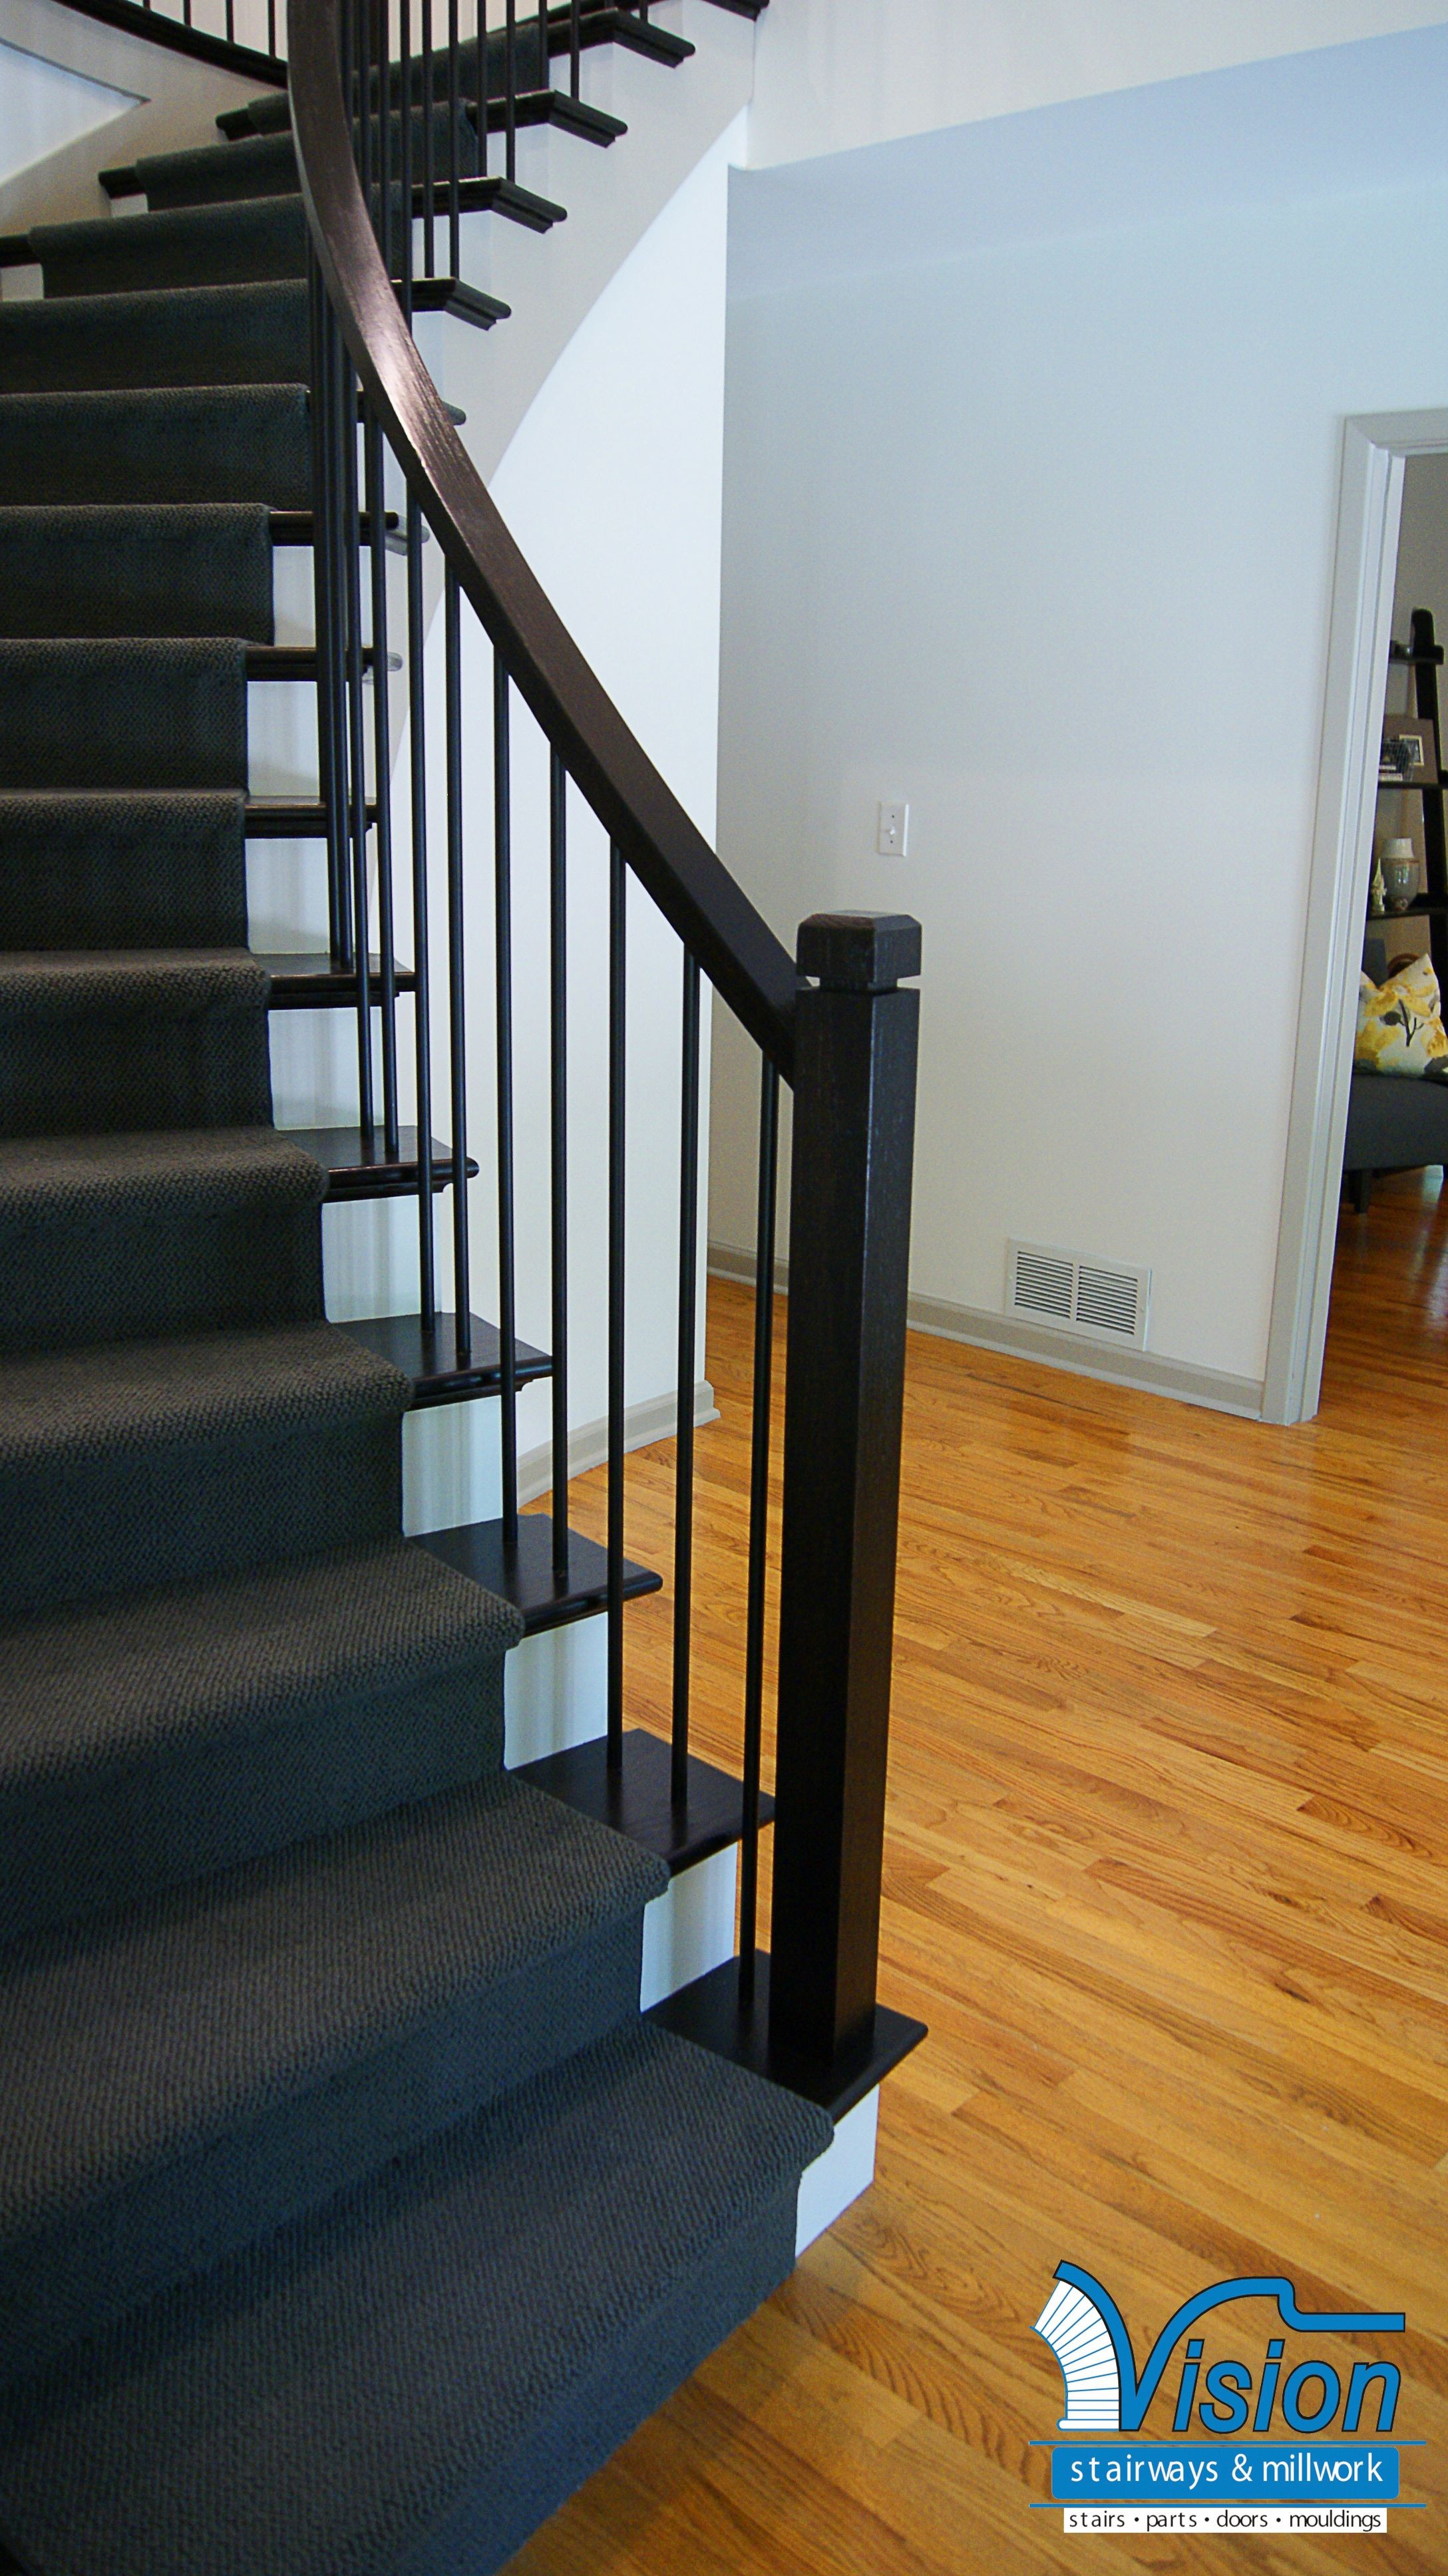 Best ideas about Staircase Railing Code . Save or Pin Lovely Basement Stair Railing Code furnitureinredsea Now.